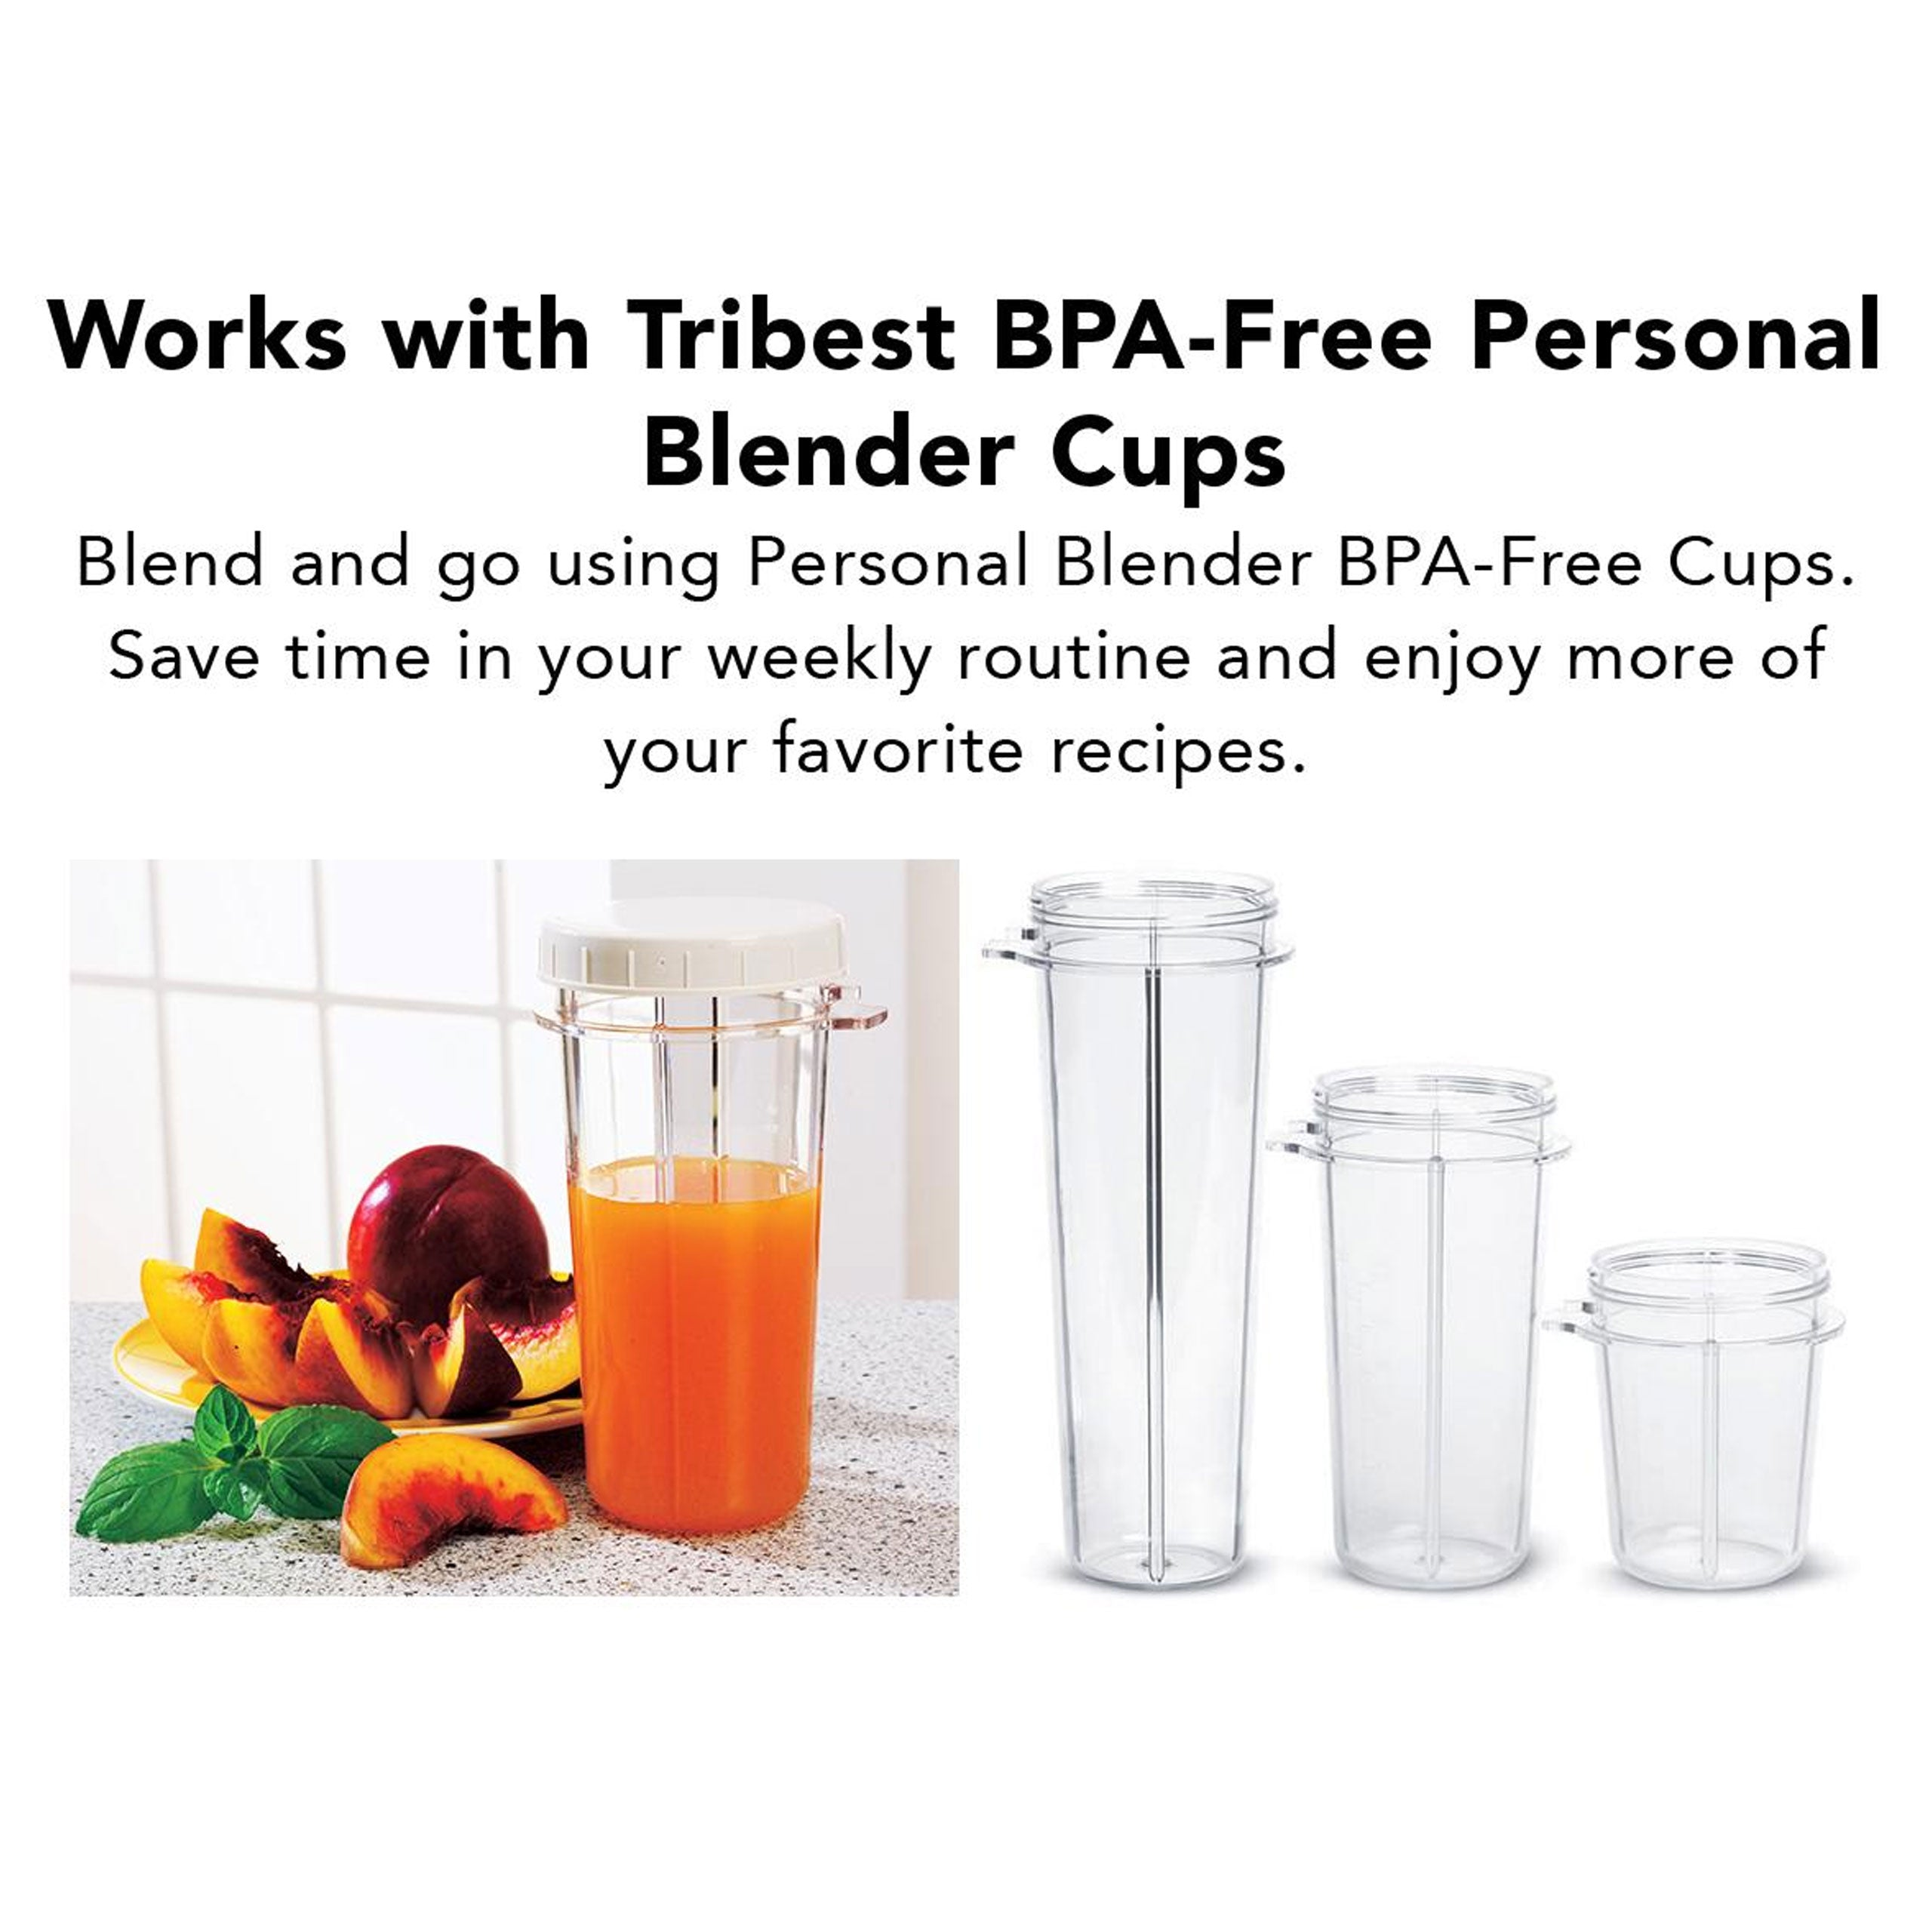 Personal Blender II® Mason Jar Ready (Basic with Mason Jar Mug 12-Piece Set) in Gray PB-430GY-A - Works with Personal Blender Cups from Tribest - Tribest